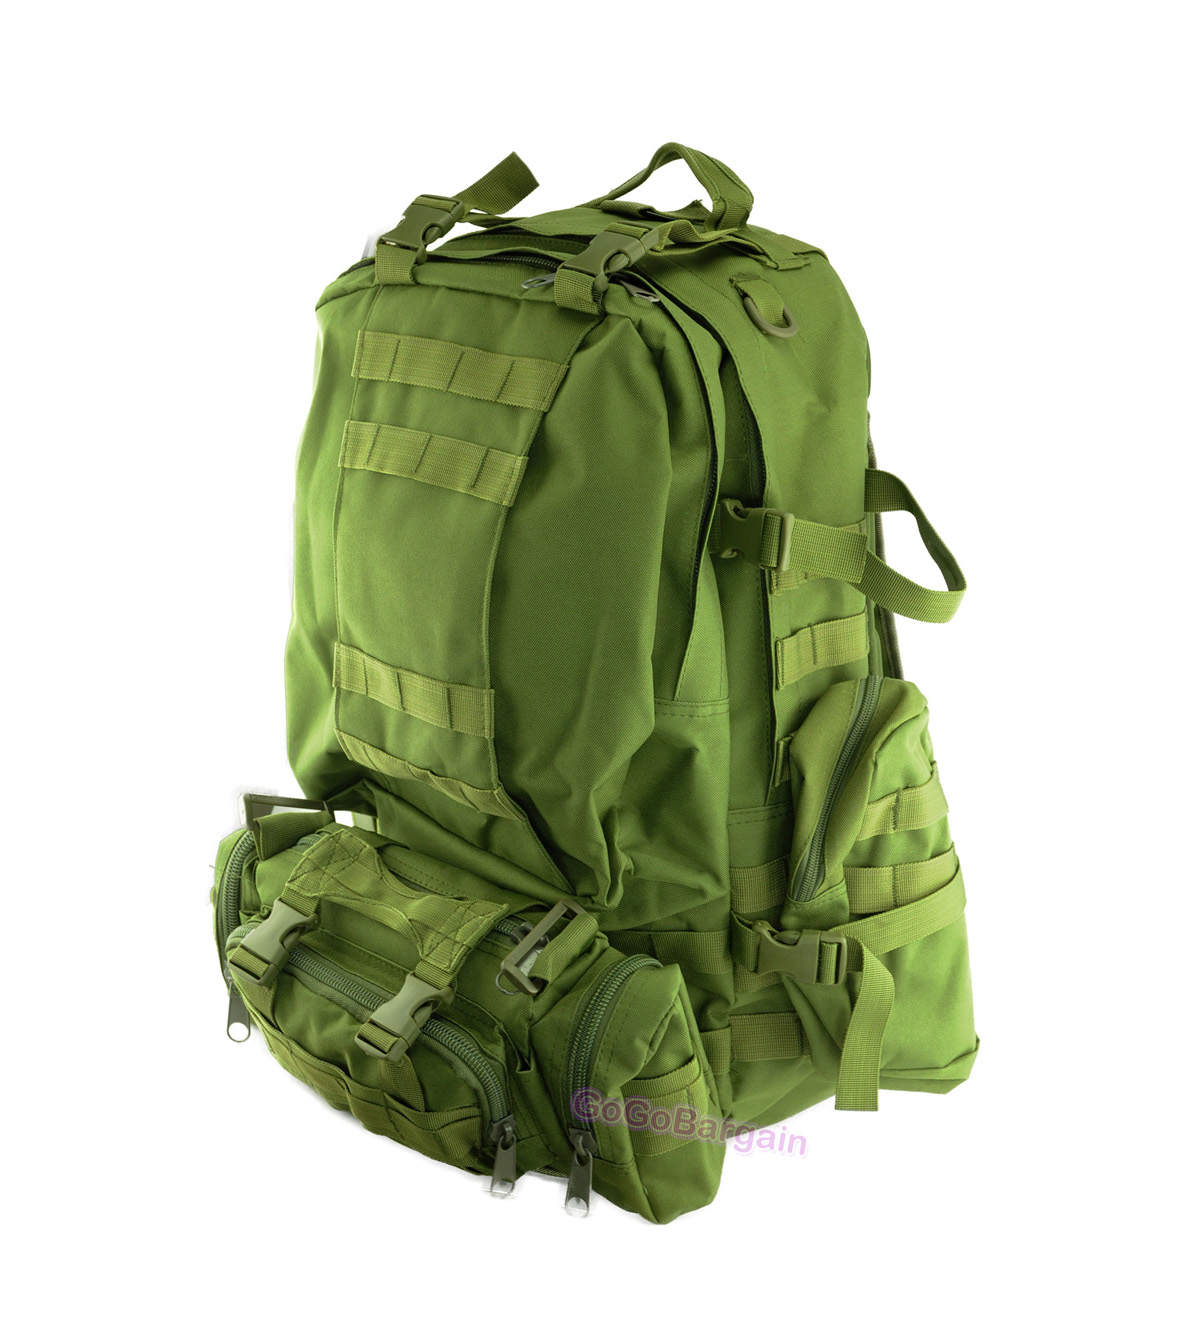 b0474a884b4f Tactical Survival Day pack Camping Hiking Molle Backpack Rucksacks ...